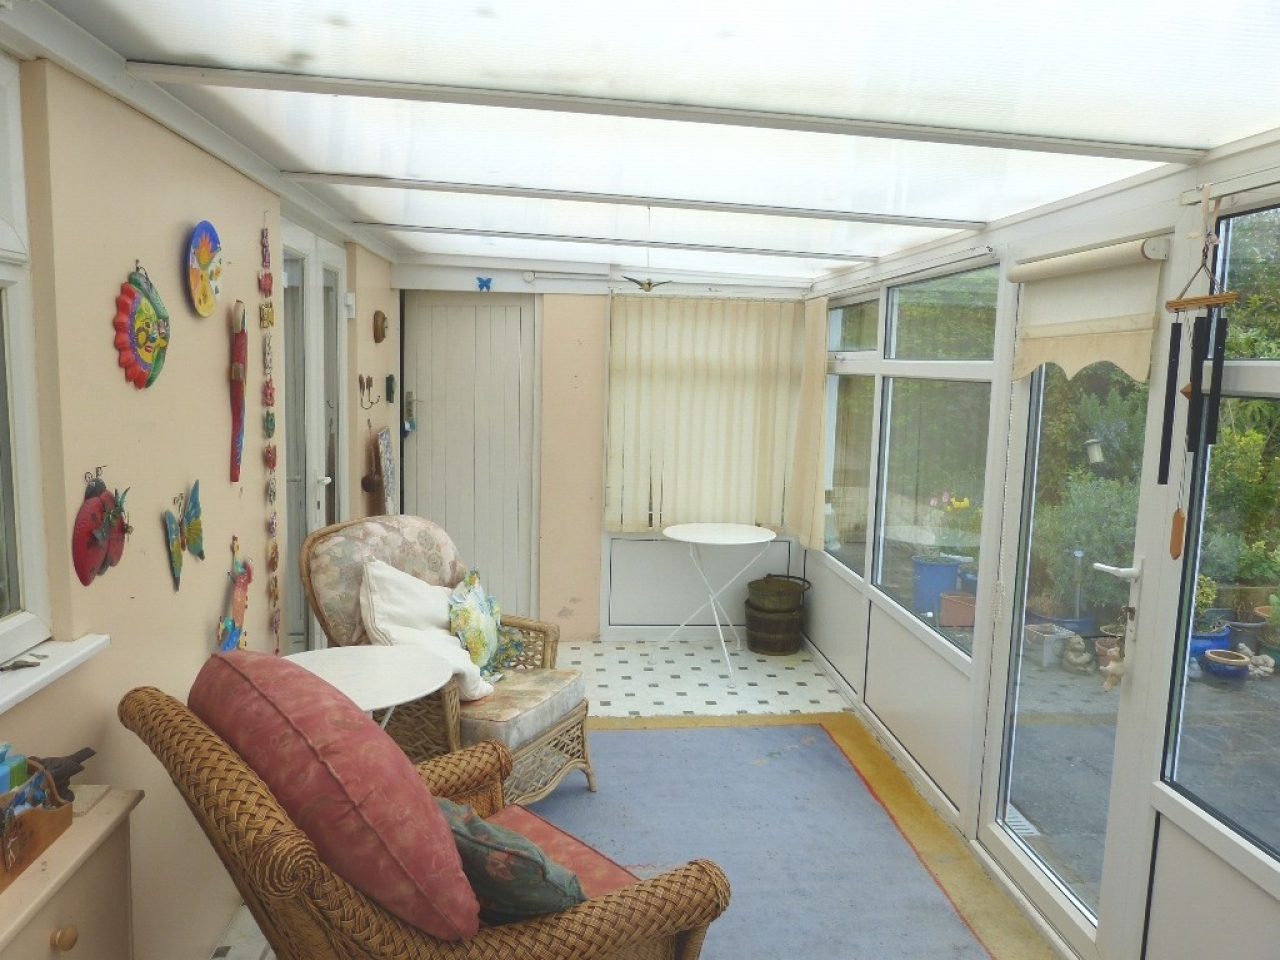 4 bedroom detached bungalow SSTC in Abergele - Photograph 6